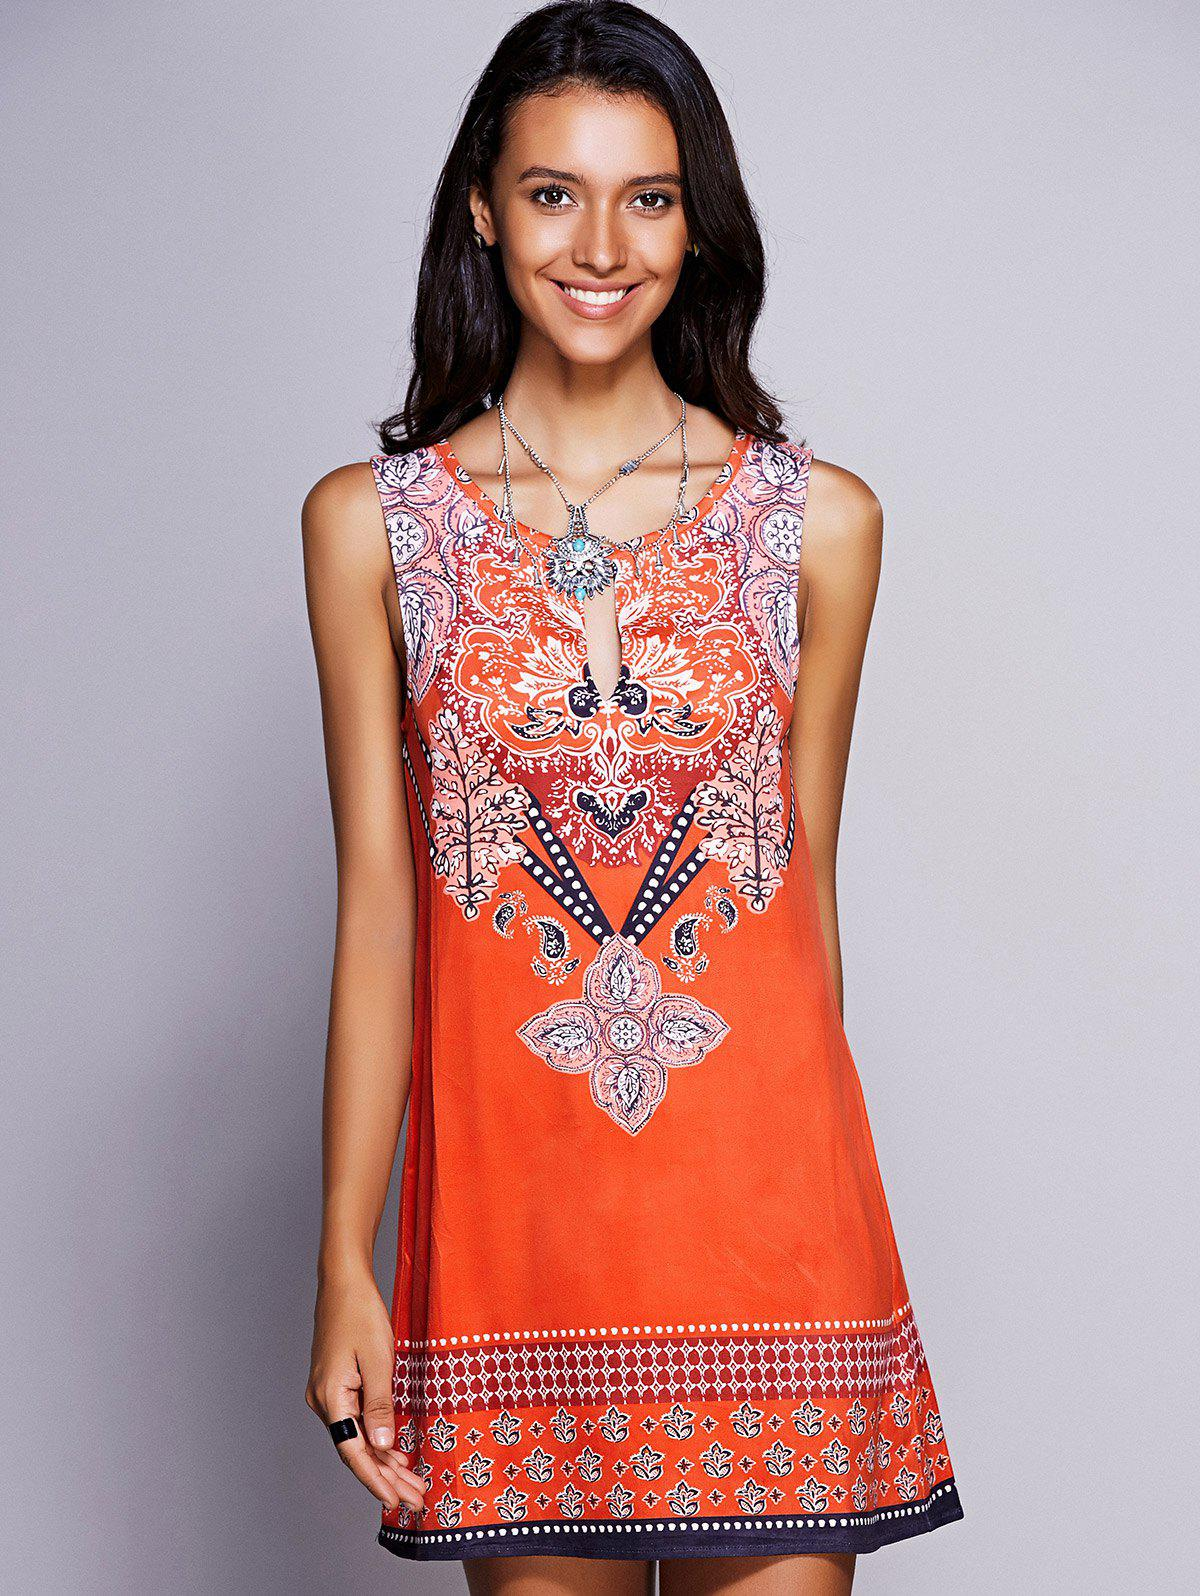 Ethnic Women's Keyhole Neckline Print Dress - ORANGE RED L